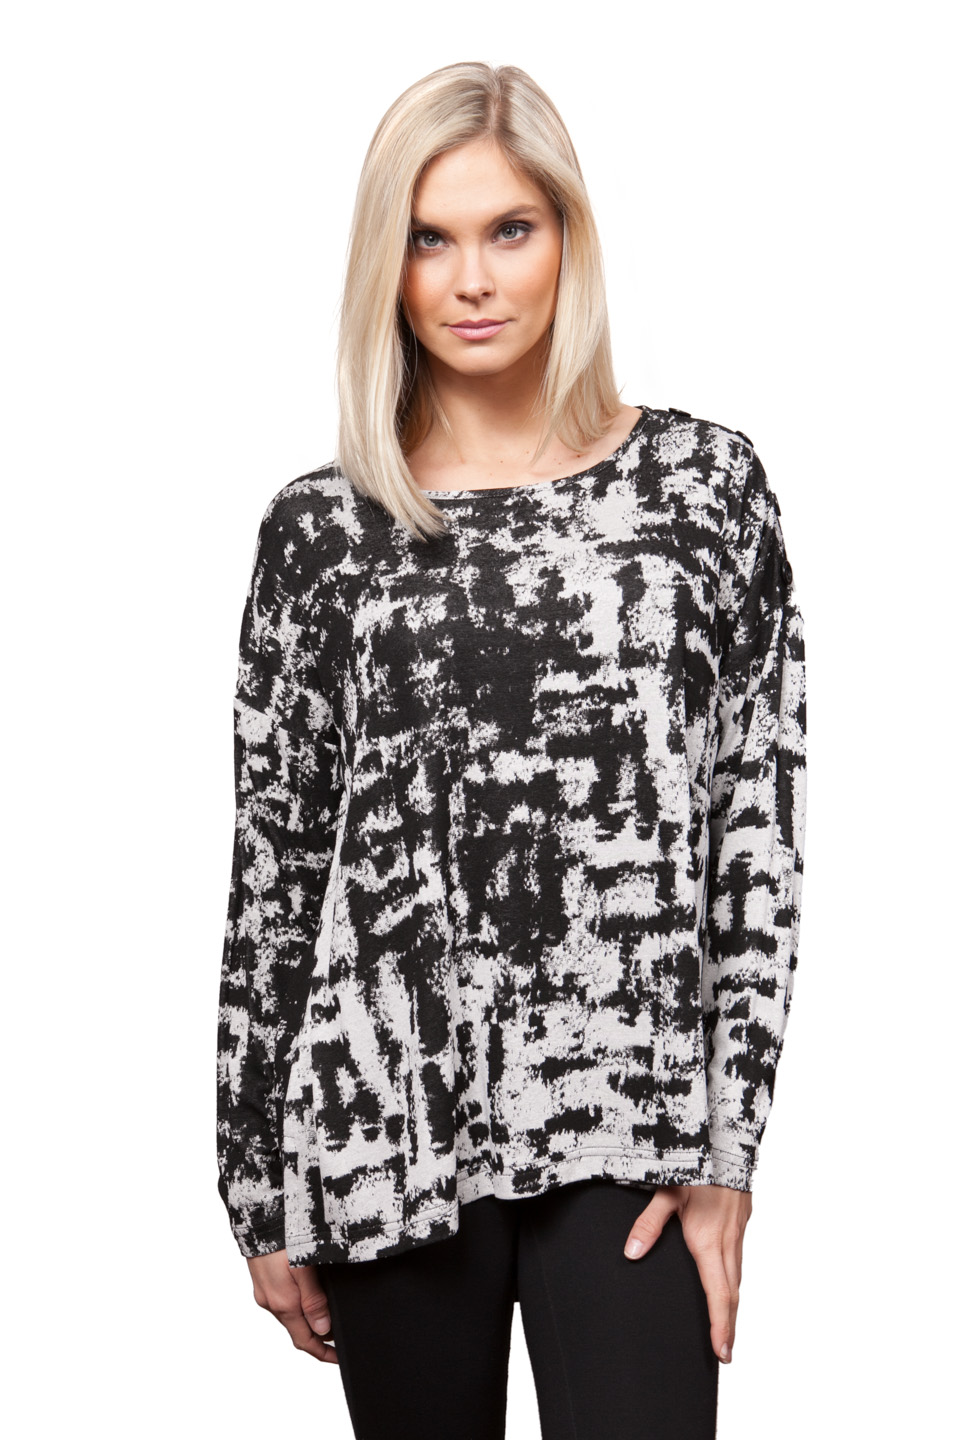 Copy of Style # 28306-16, p. 5<br>Fine Gauge Sweater Knit<br>Color: Black/White<br>  &nbsp